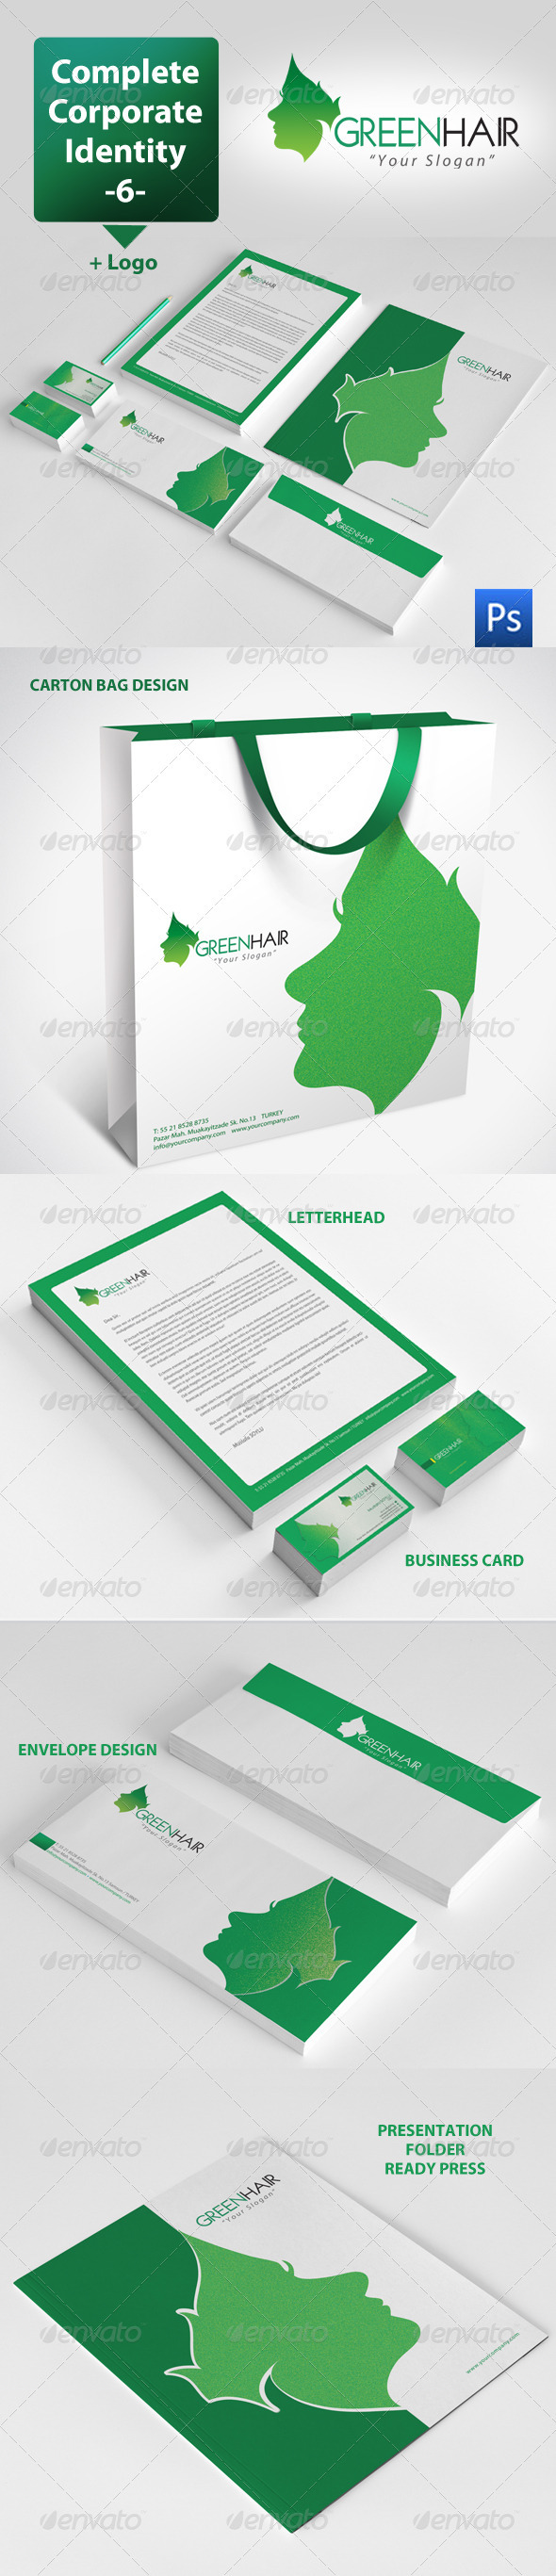 GraphicRiver Green Hair Corporate Identity Package 3602510